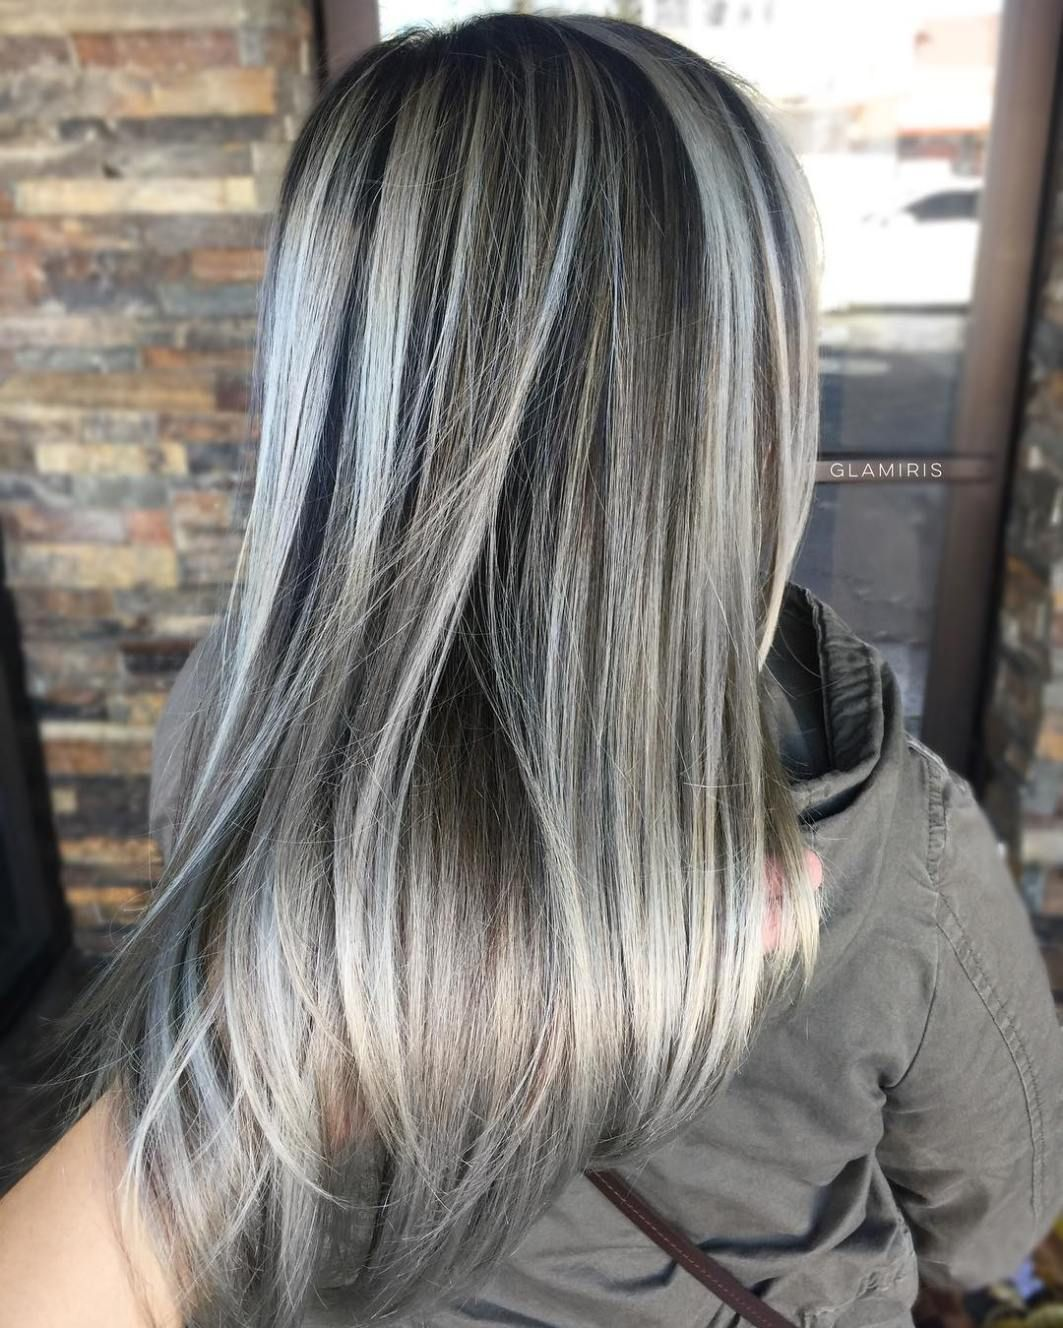 60 Shades Of Grey Silver And White Highlights For Eternal Youth Brown Hair With Ash Blonde Highlights Ash Blonde Highlights Hair Styles